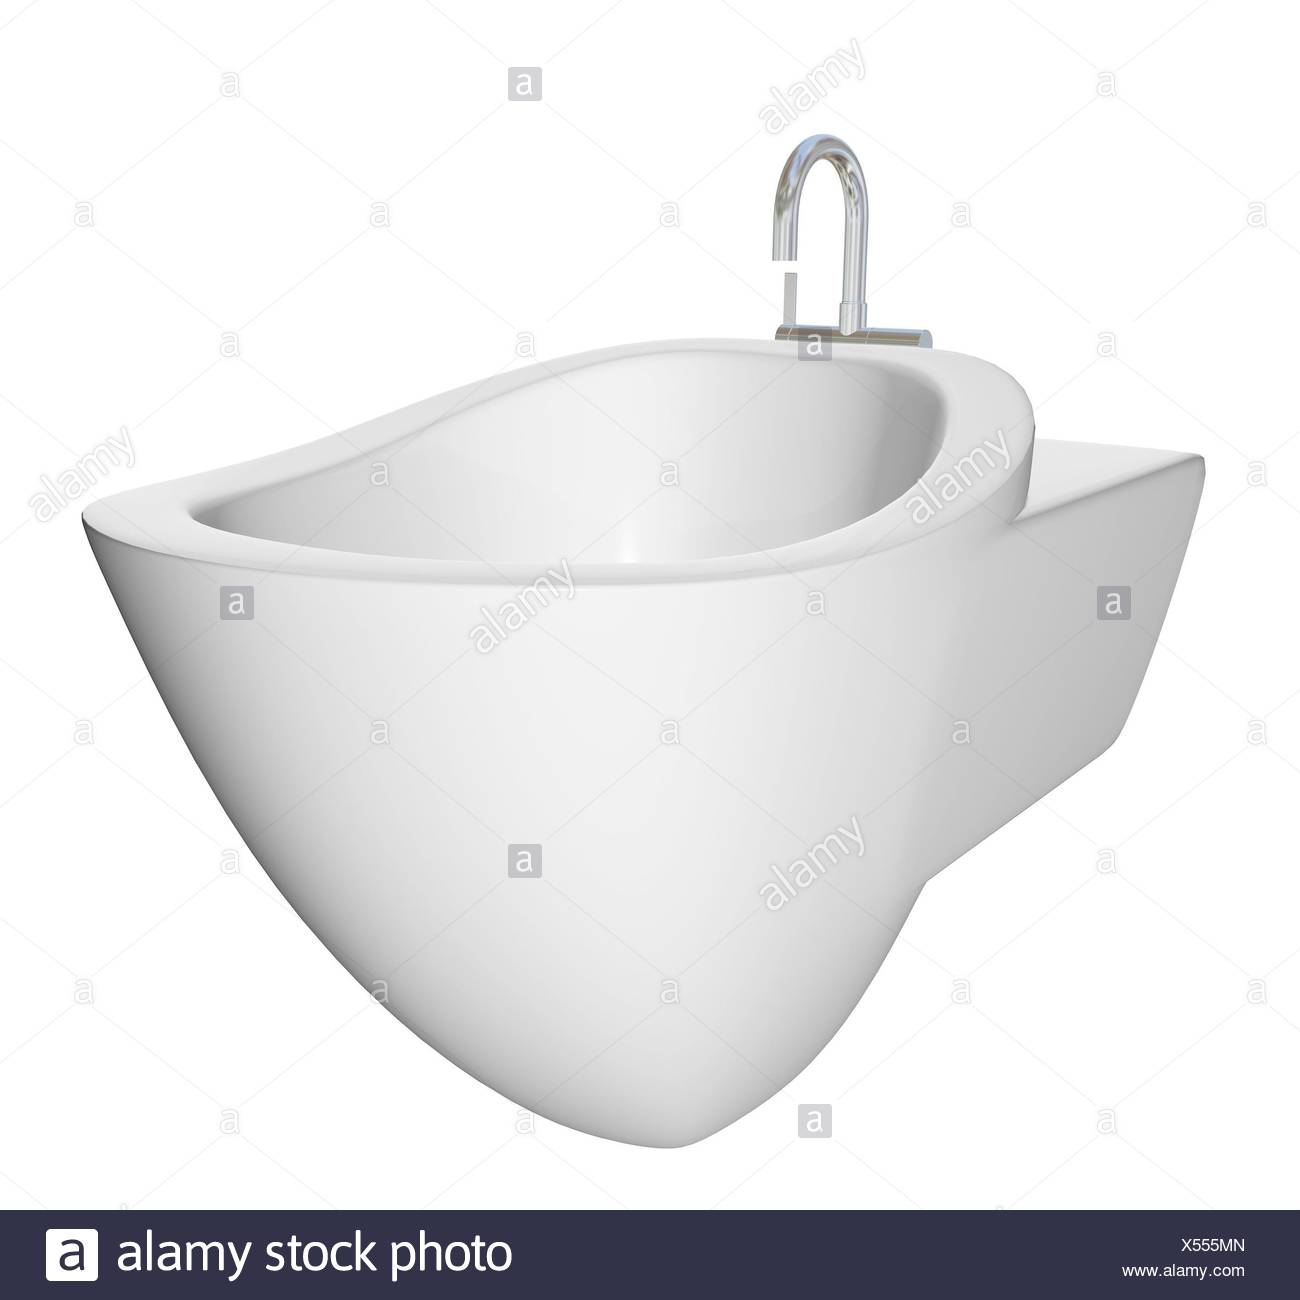 Round bidet design for bathrooms Type of sink intended for washing ...